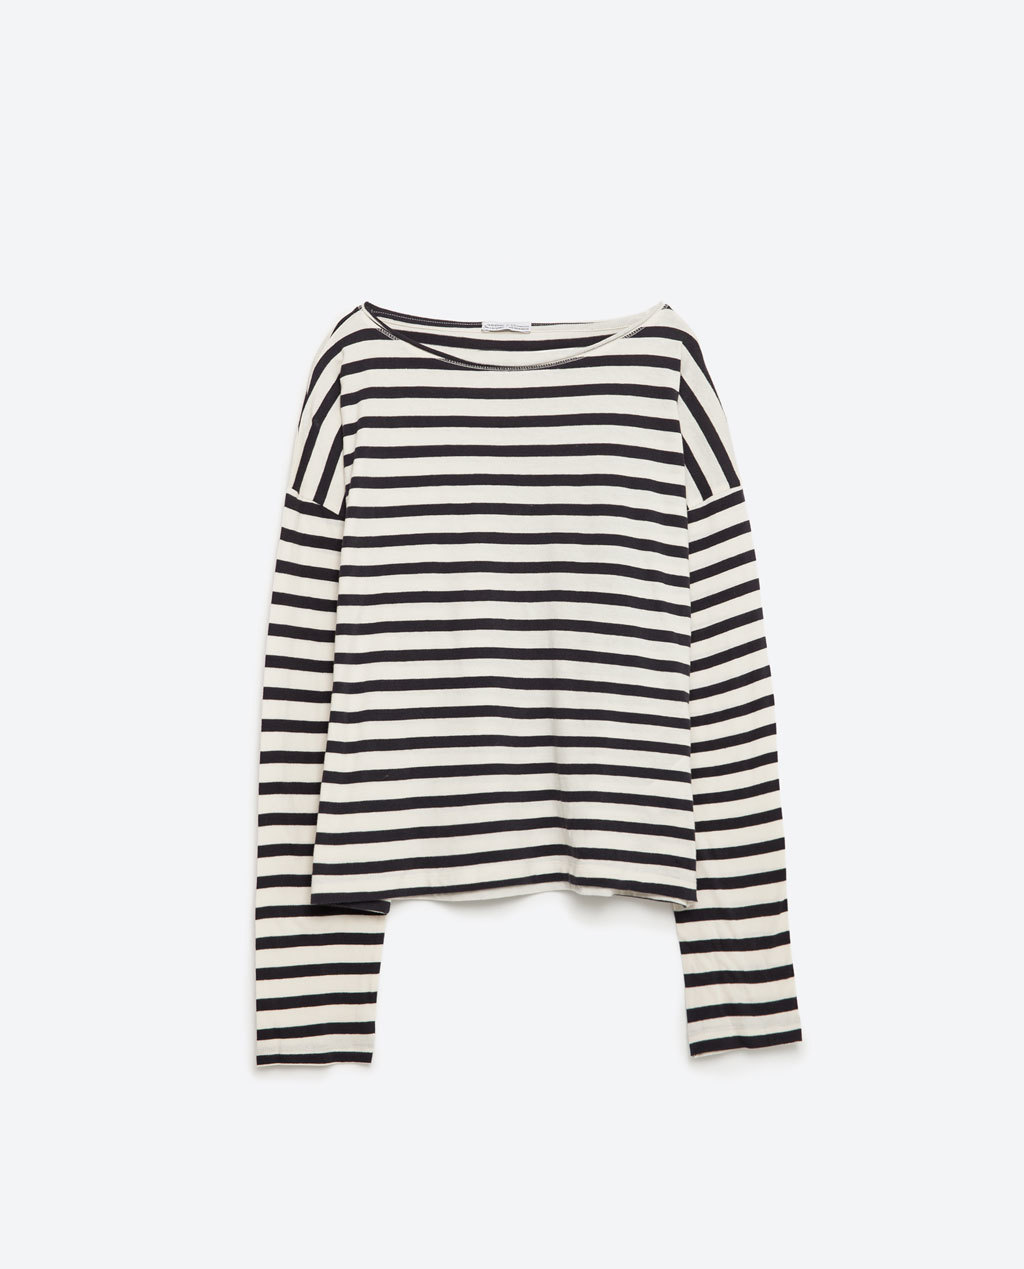 Boatneck Top - neckline: slash/boat neckline; pattern: horizontal stripes; secondary colour: white; predominant colour: black; occasions: casual; length: standard; style: top; fibres: cotton - 100%; fit: body skimming; sleeve length: long sleeve; sleeve style: standard; pattern type: fabric; texture group: jersey - stretchy/drapey; multicoloured: multicoloured; season: s/s 2016; wardrobe: basic